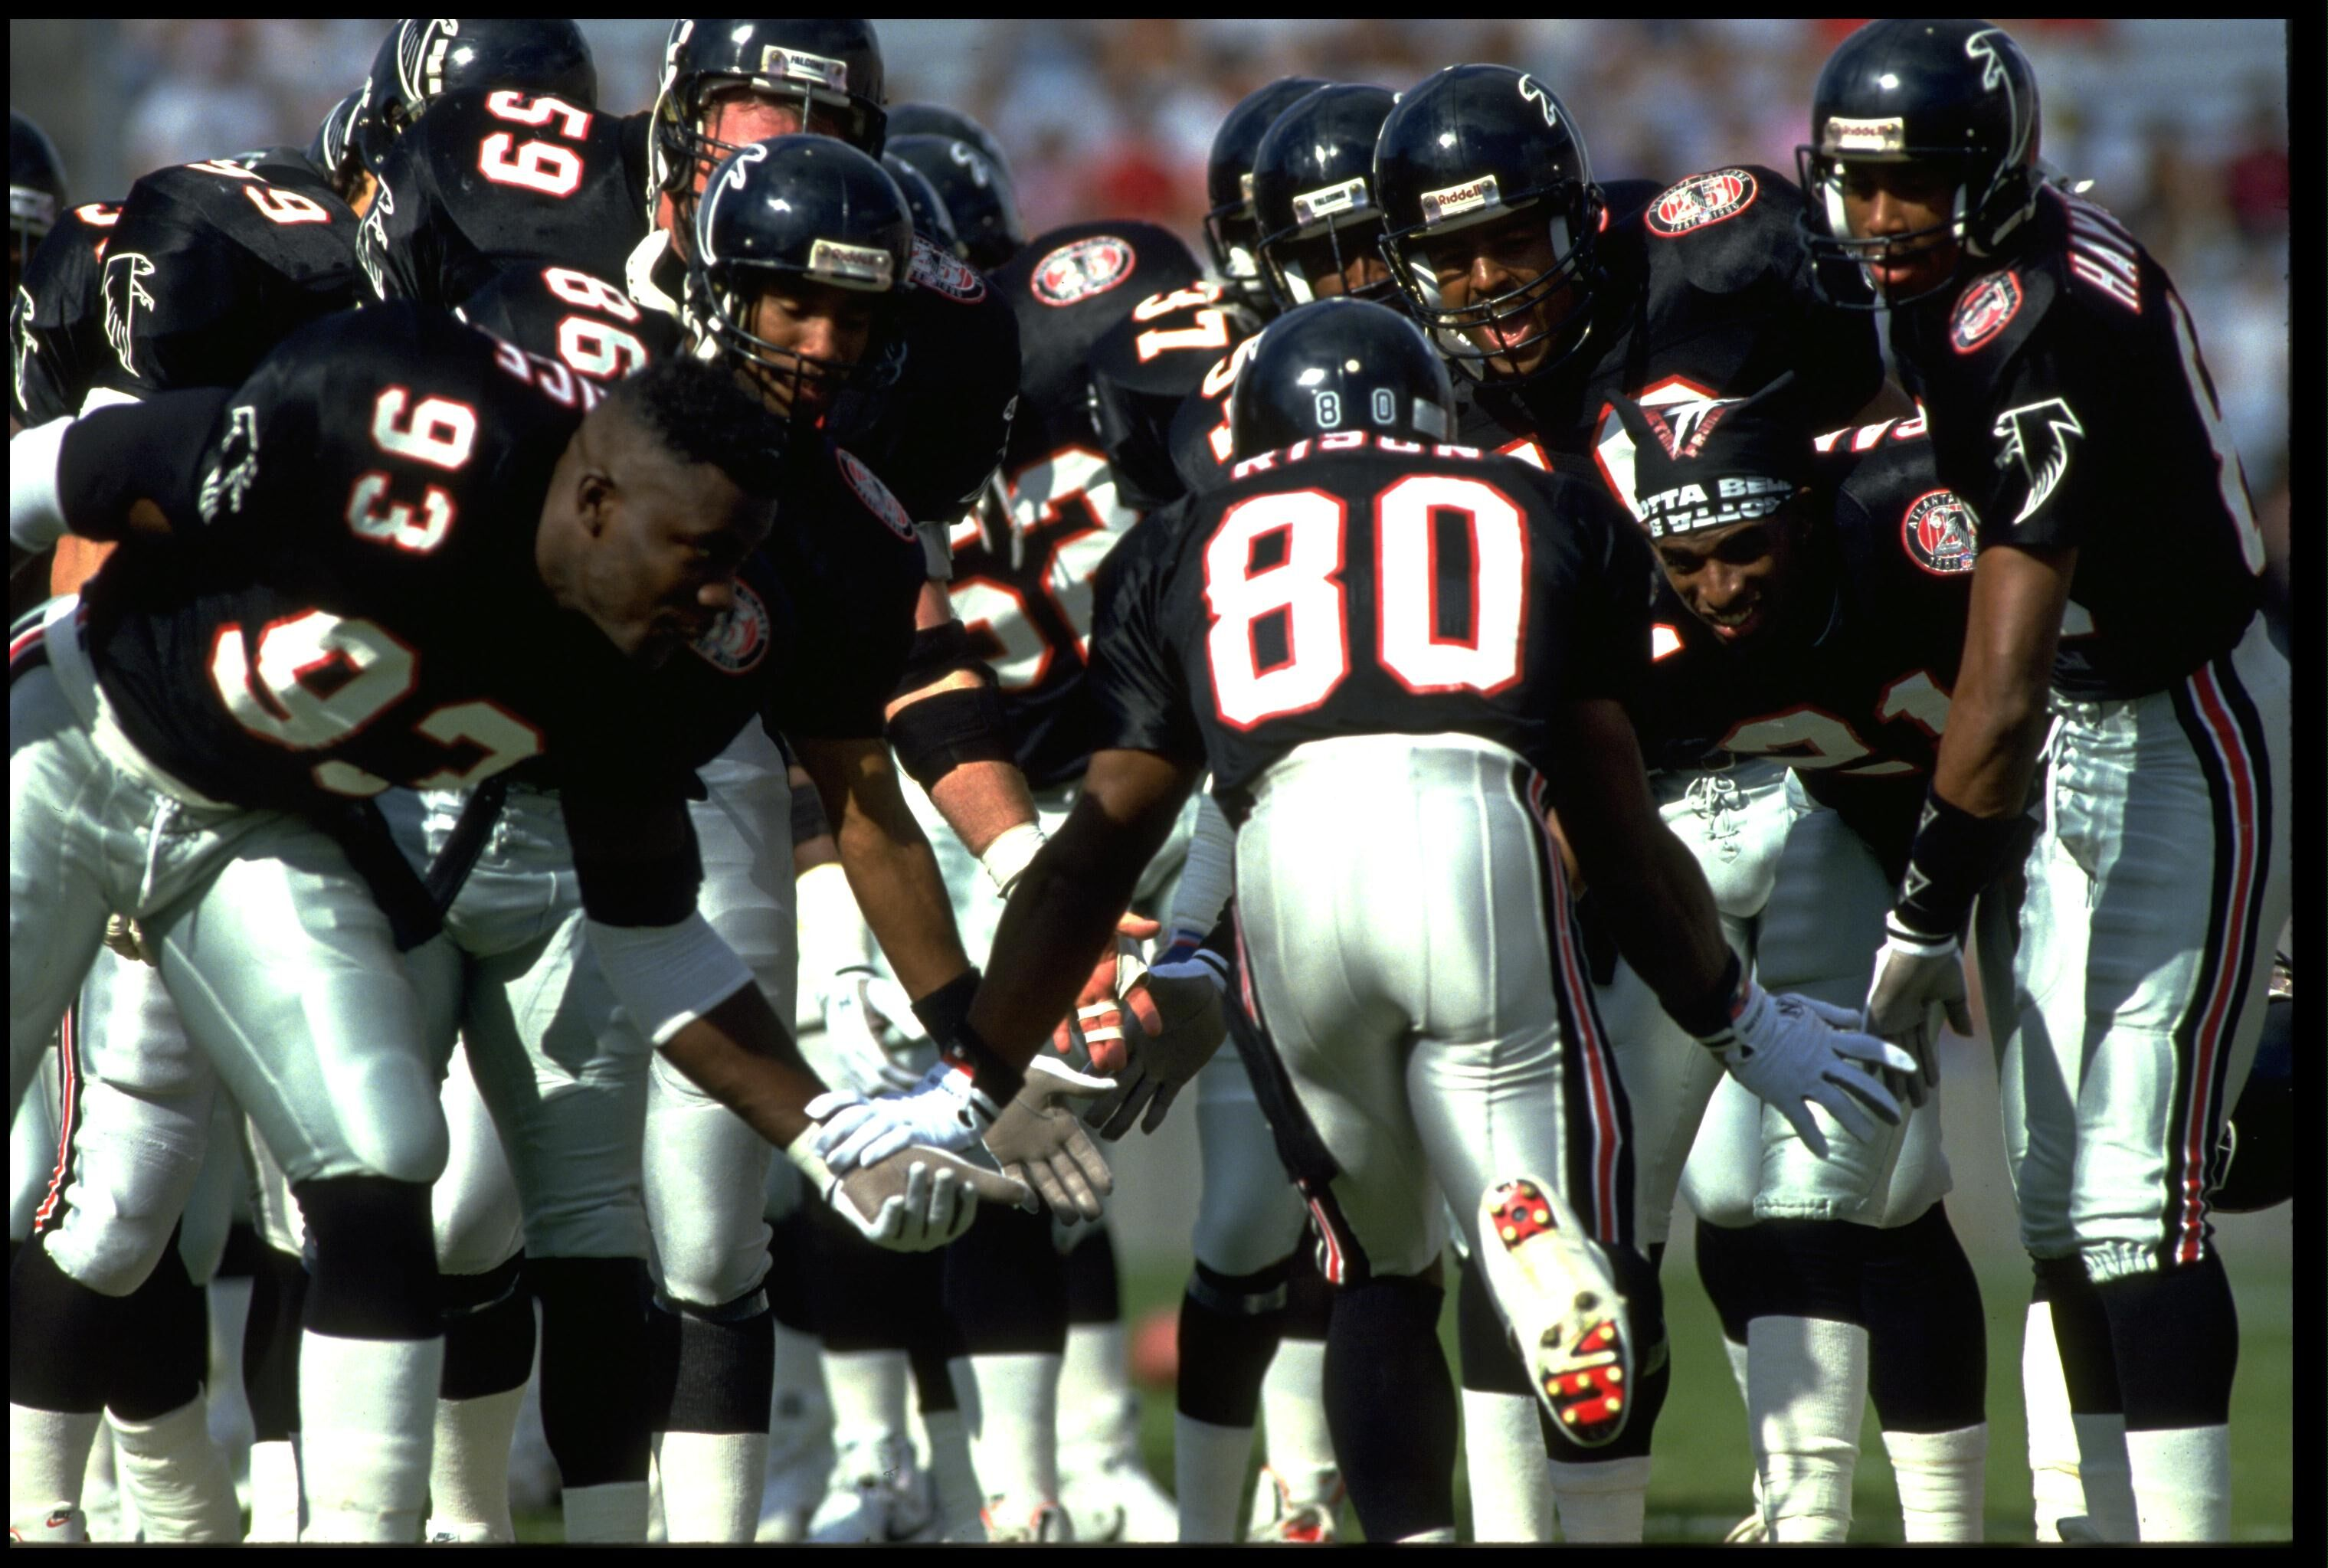 291023-andre-rison-and-falcons-team.jpg